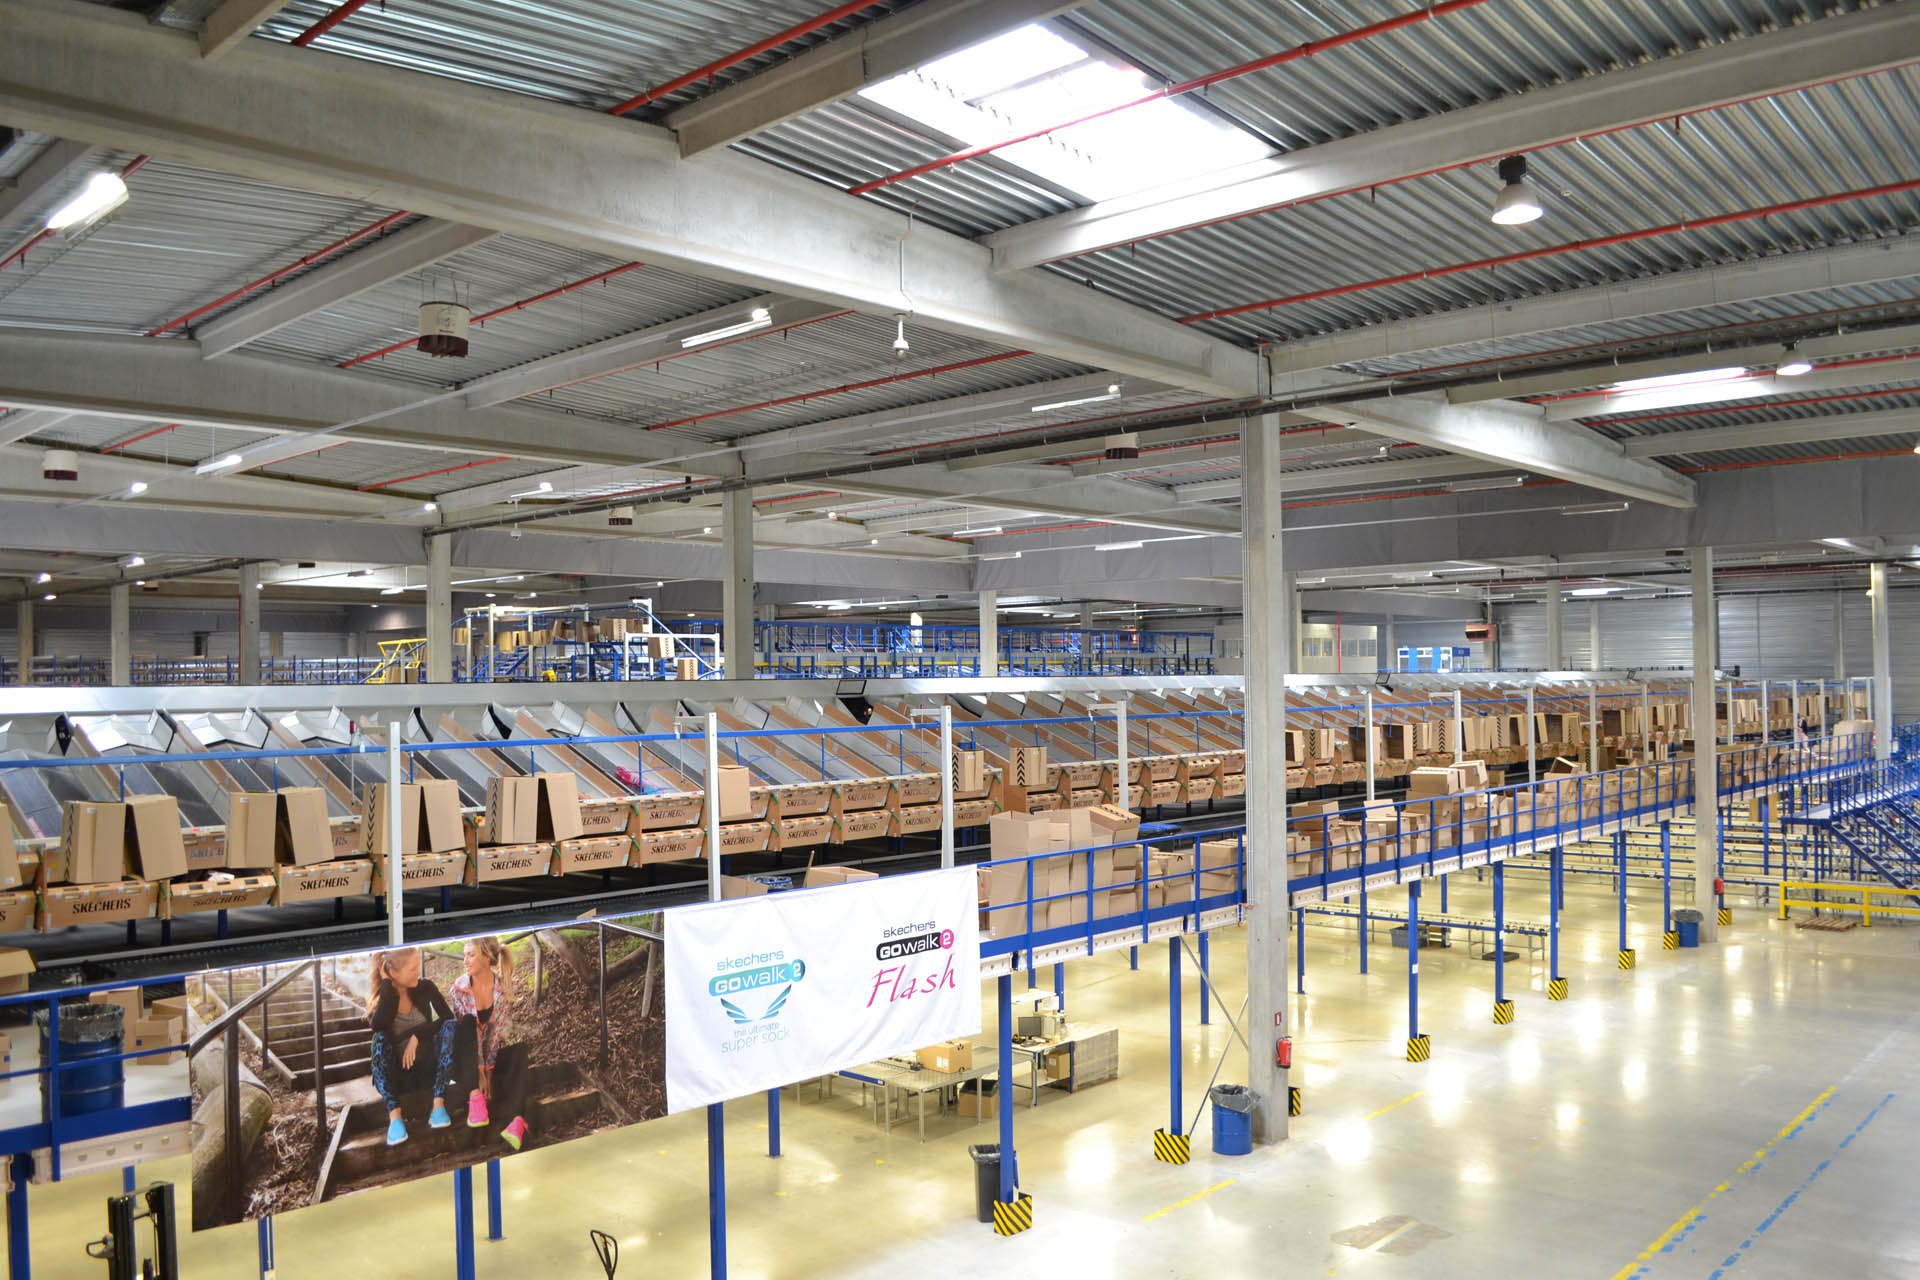 Inside the Skechers European Distribution Centre (EDC) in Liège